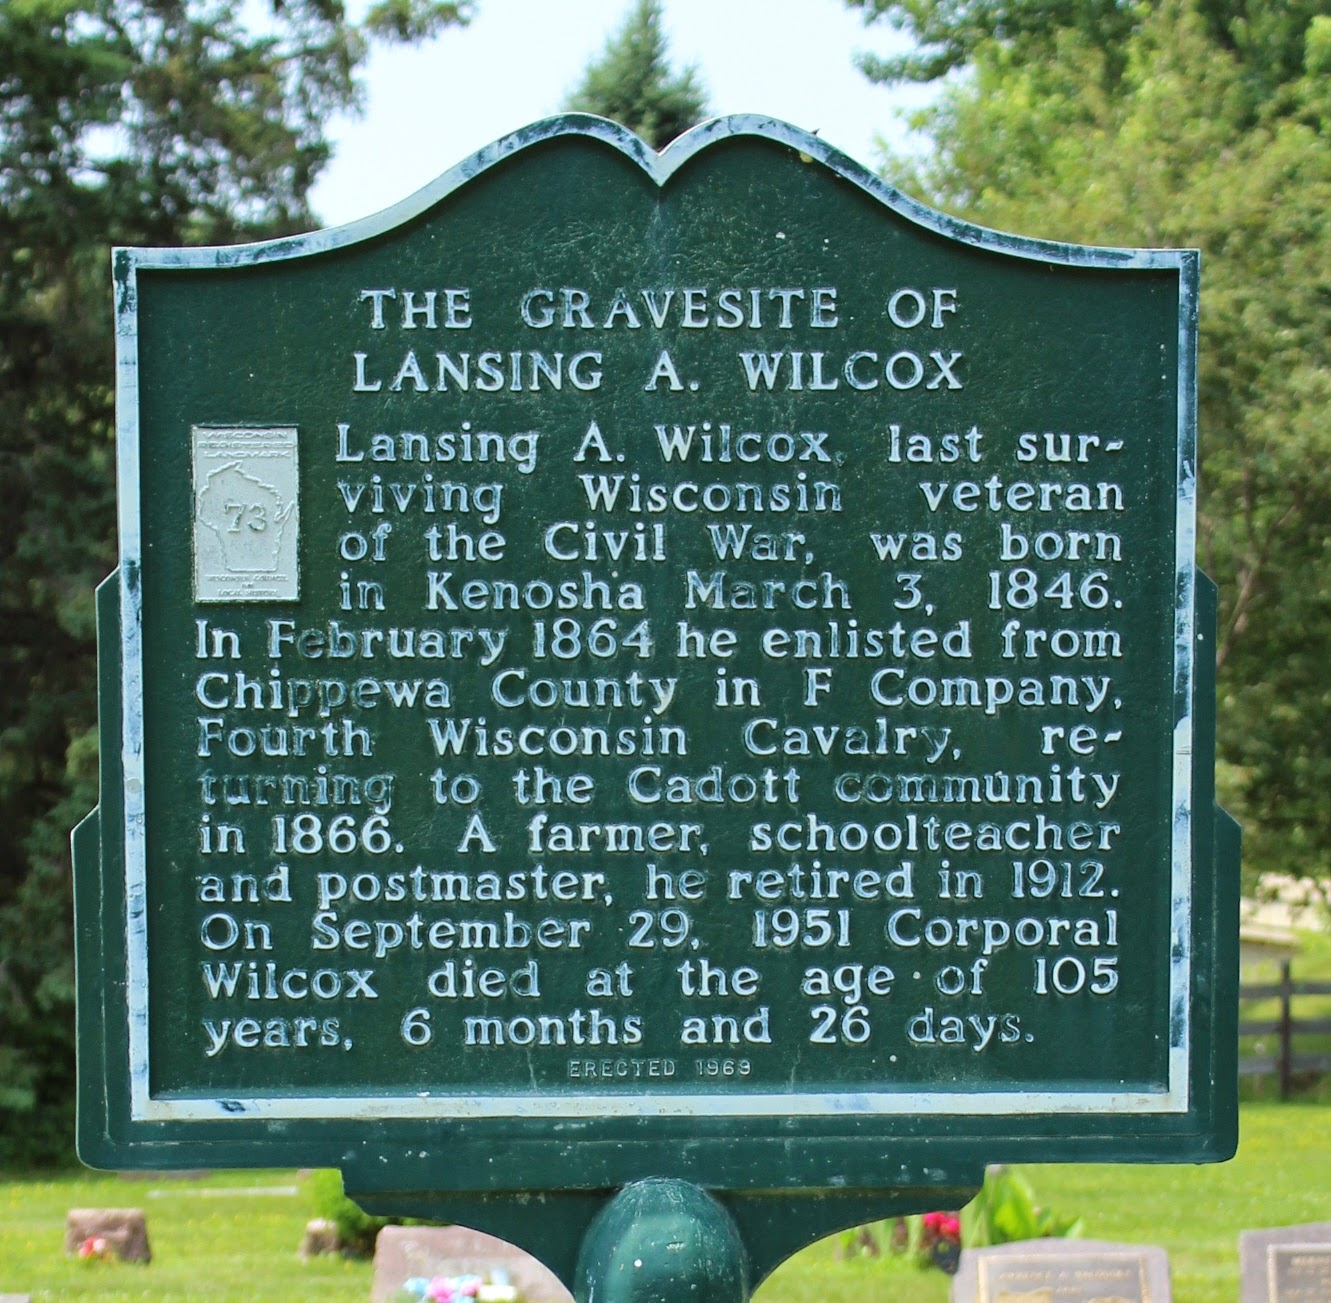 Marker of the Week:<br>WRL-73: The Gravesite of Lansing A. Wilcox